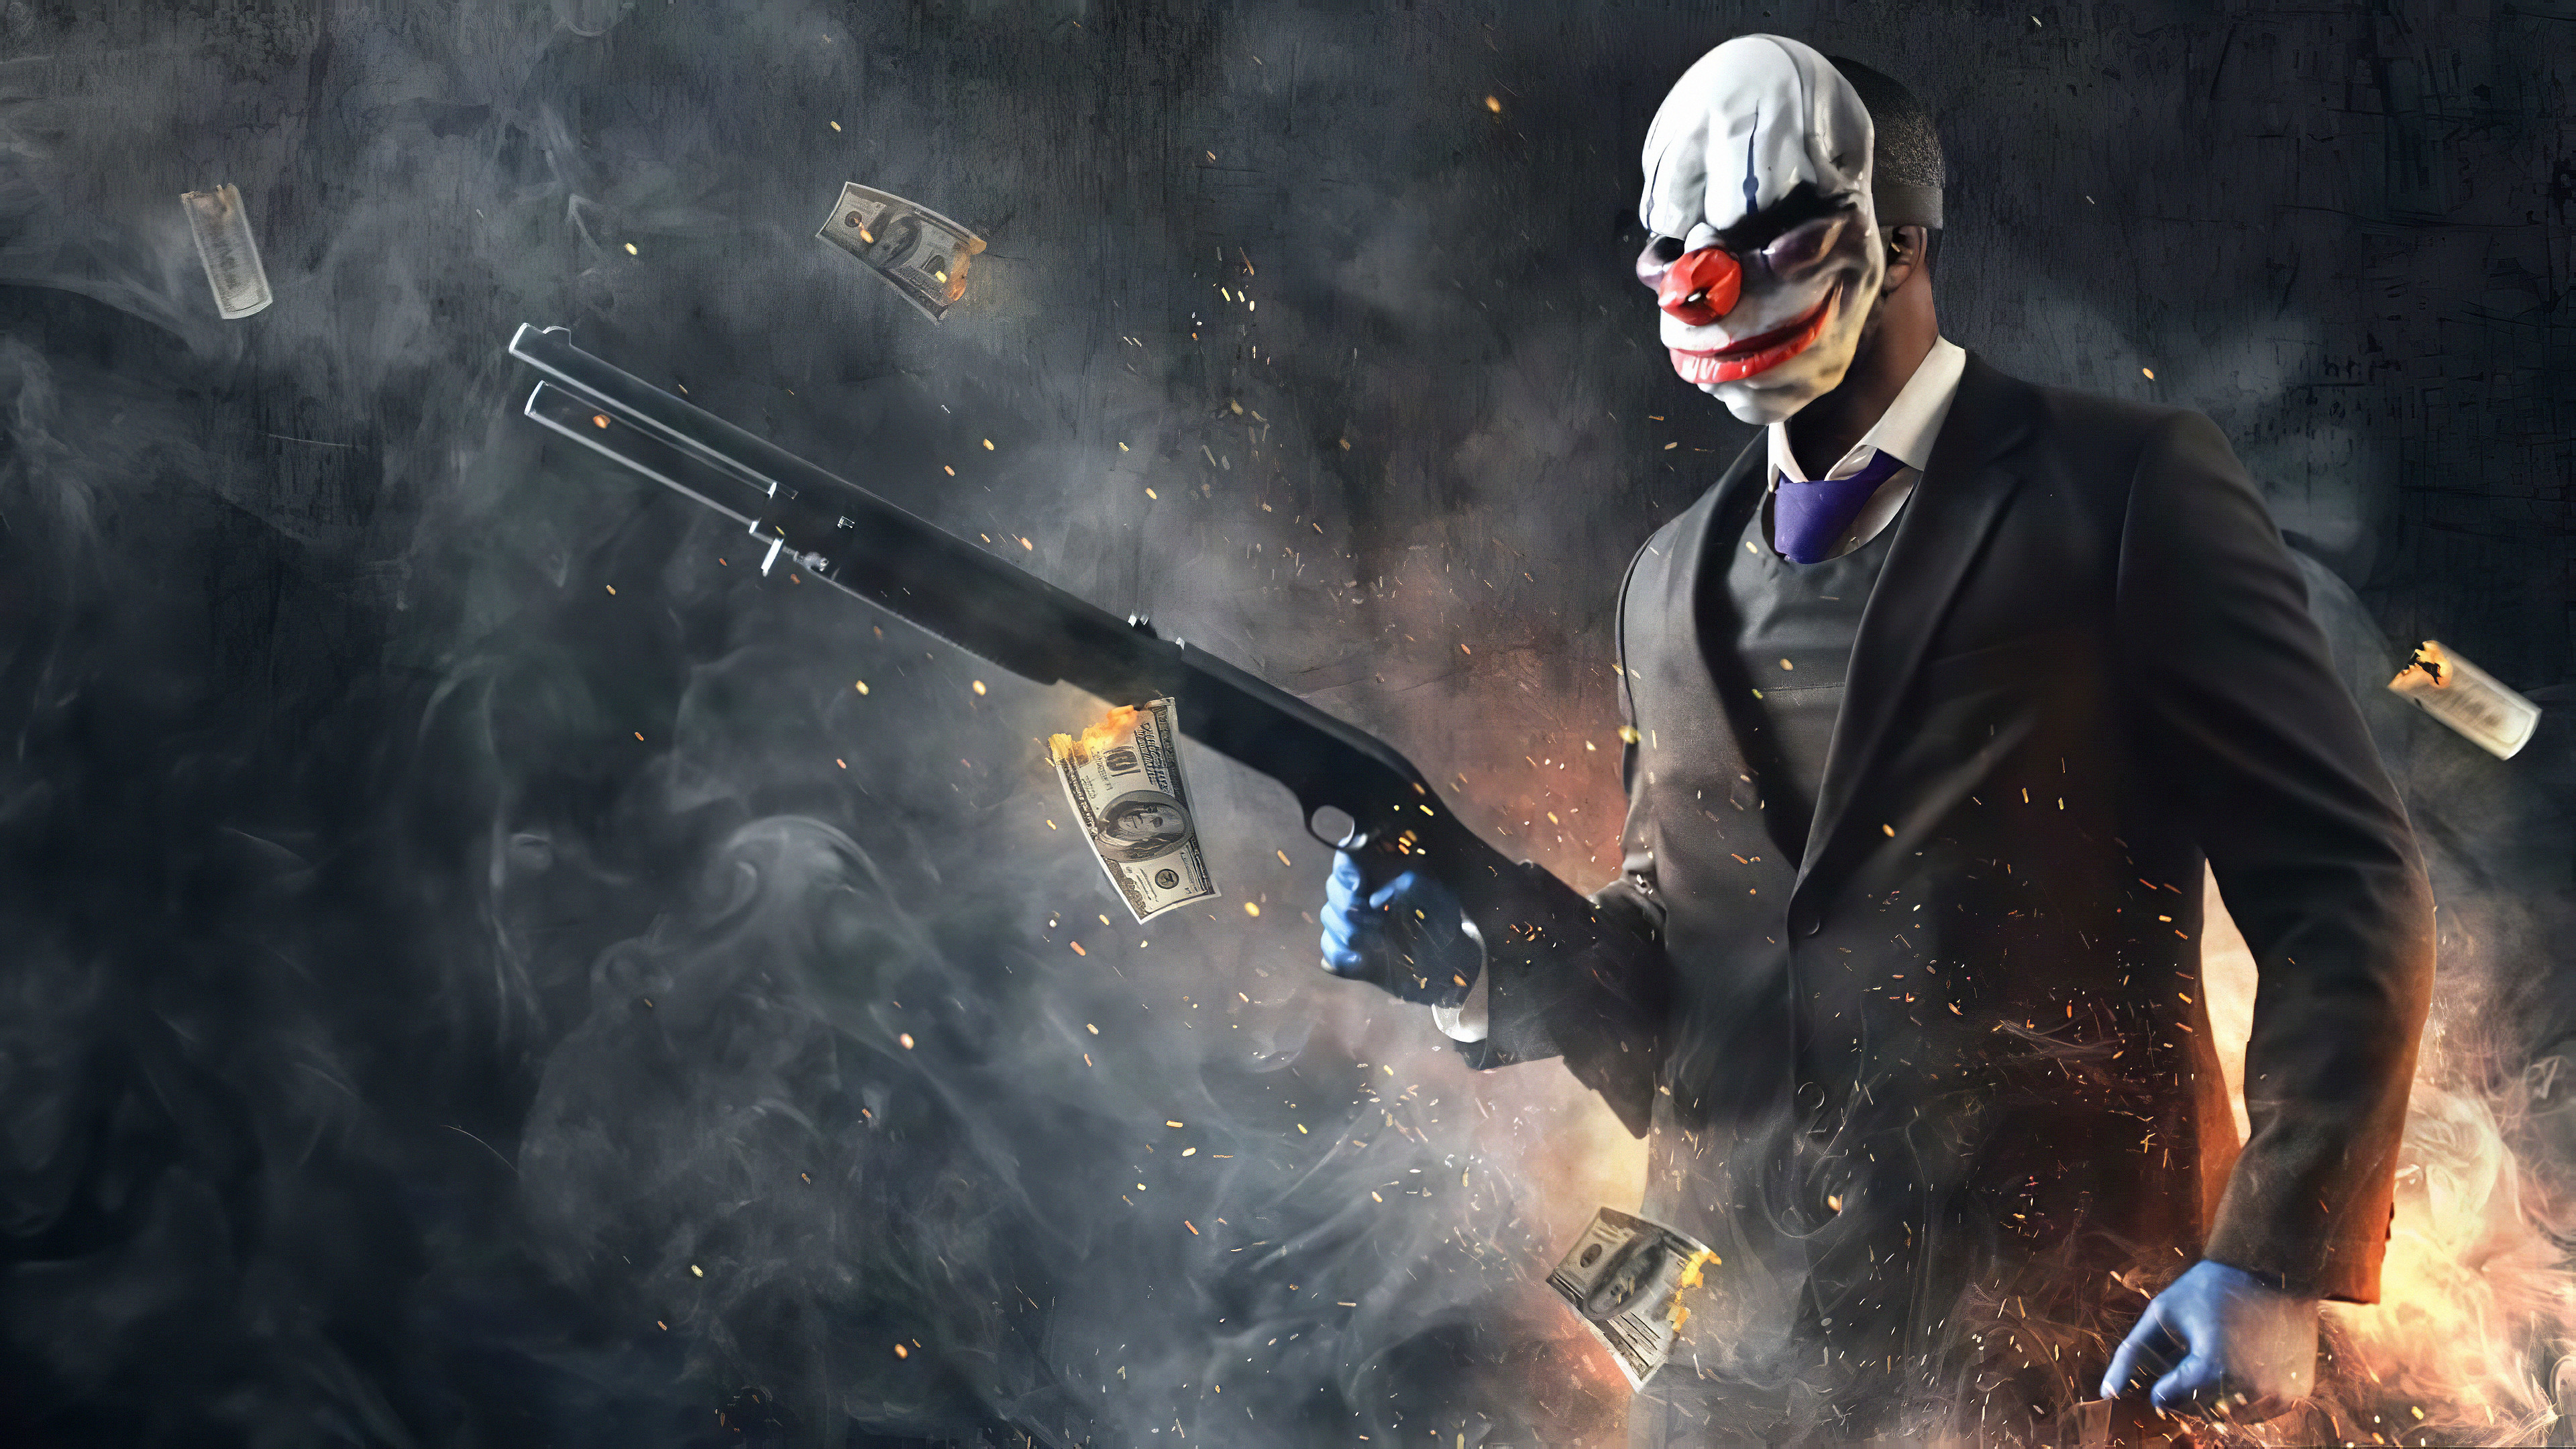 payday 2 2019 4k 13 3840x2160 1 - Payday 2 2019 - Payday 2 game wallpaper 4k, Payday 2 game 4k wallpaper, Payday 2 4k wallpaper